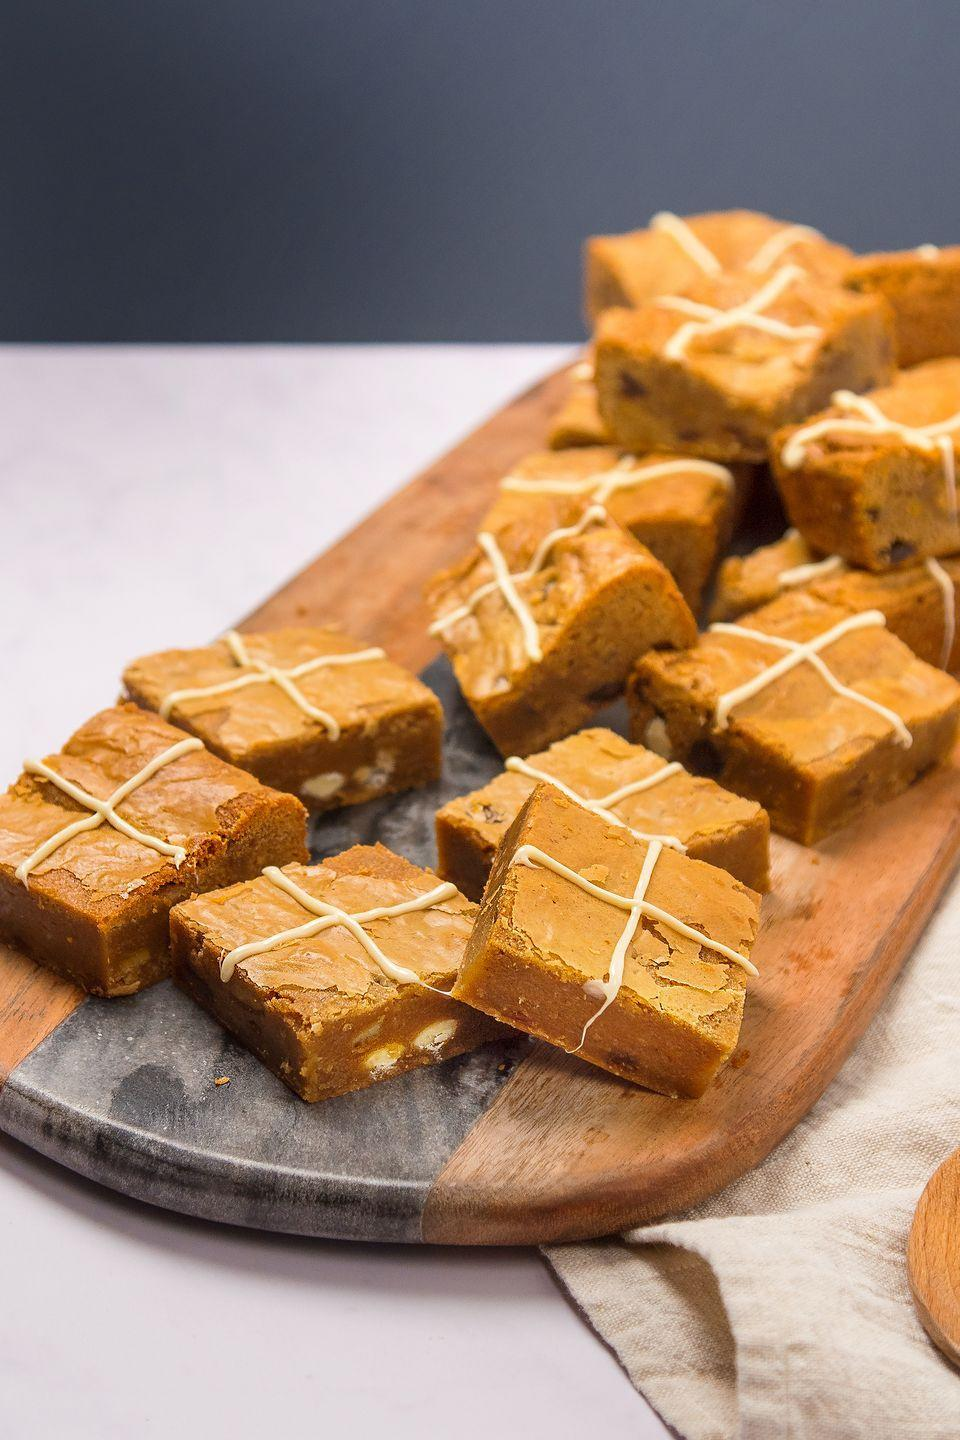 """<p>Blondies are a great thing to bake, and these Easter versions are packed with the fabulous spied and dried fruits of the humble hot cross bun.</p><p><strong><br>Recipe: <a href=""""https://www.goodhousekeeping.com/uk/food/recipes/a26699101/hot-cross-bun-blondies/"""" rel=""""nofollow noopener"""" target=""""_blank"""" data-ylk=""""slk:Hot cross bun blondies"""" class=""""link rapid-noclick-resp"""">Hot cross bun blondies</a></strong></p>"""